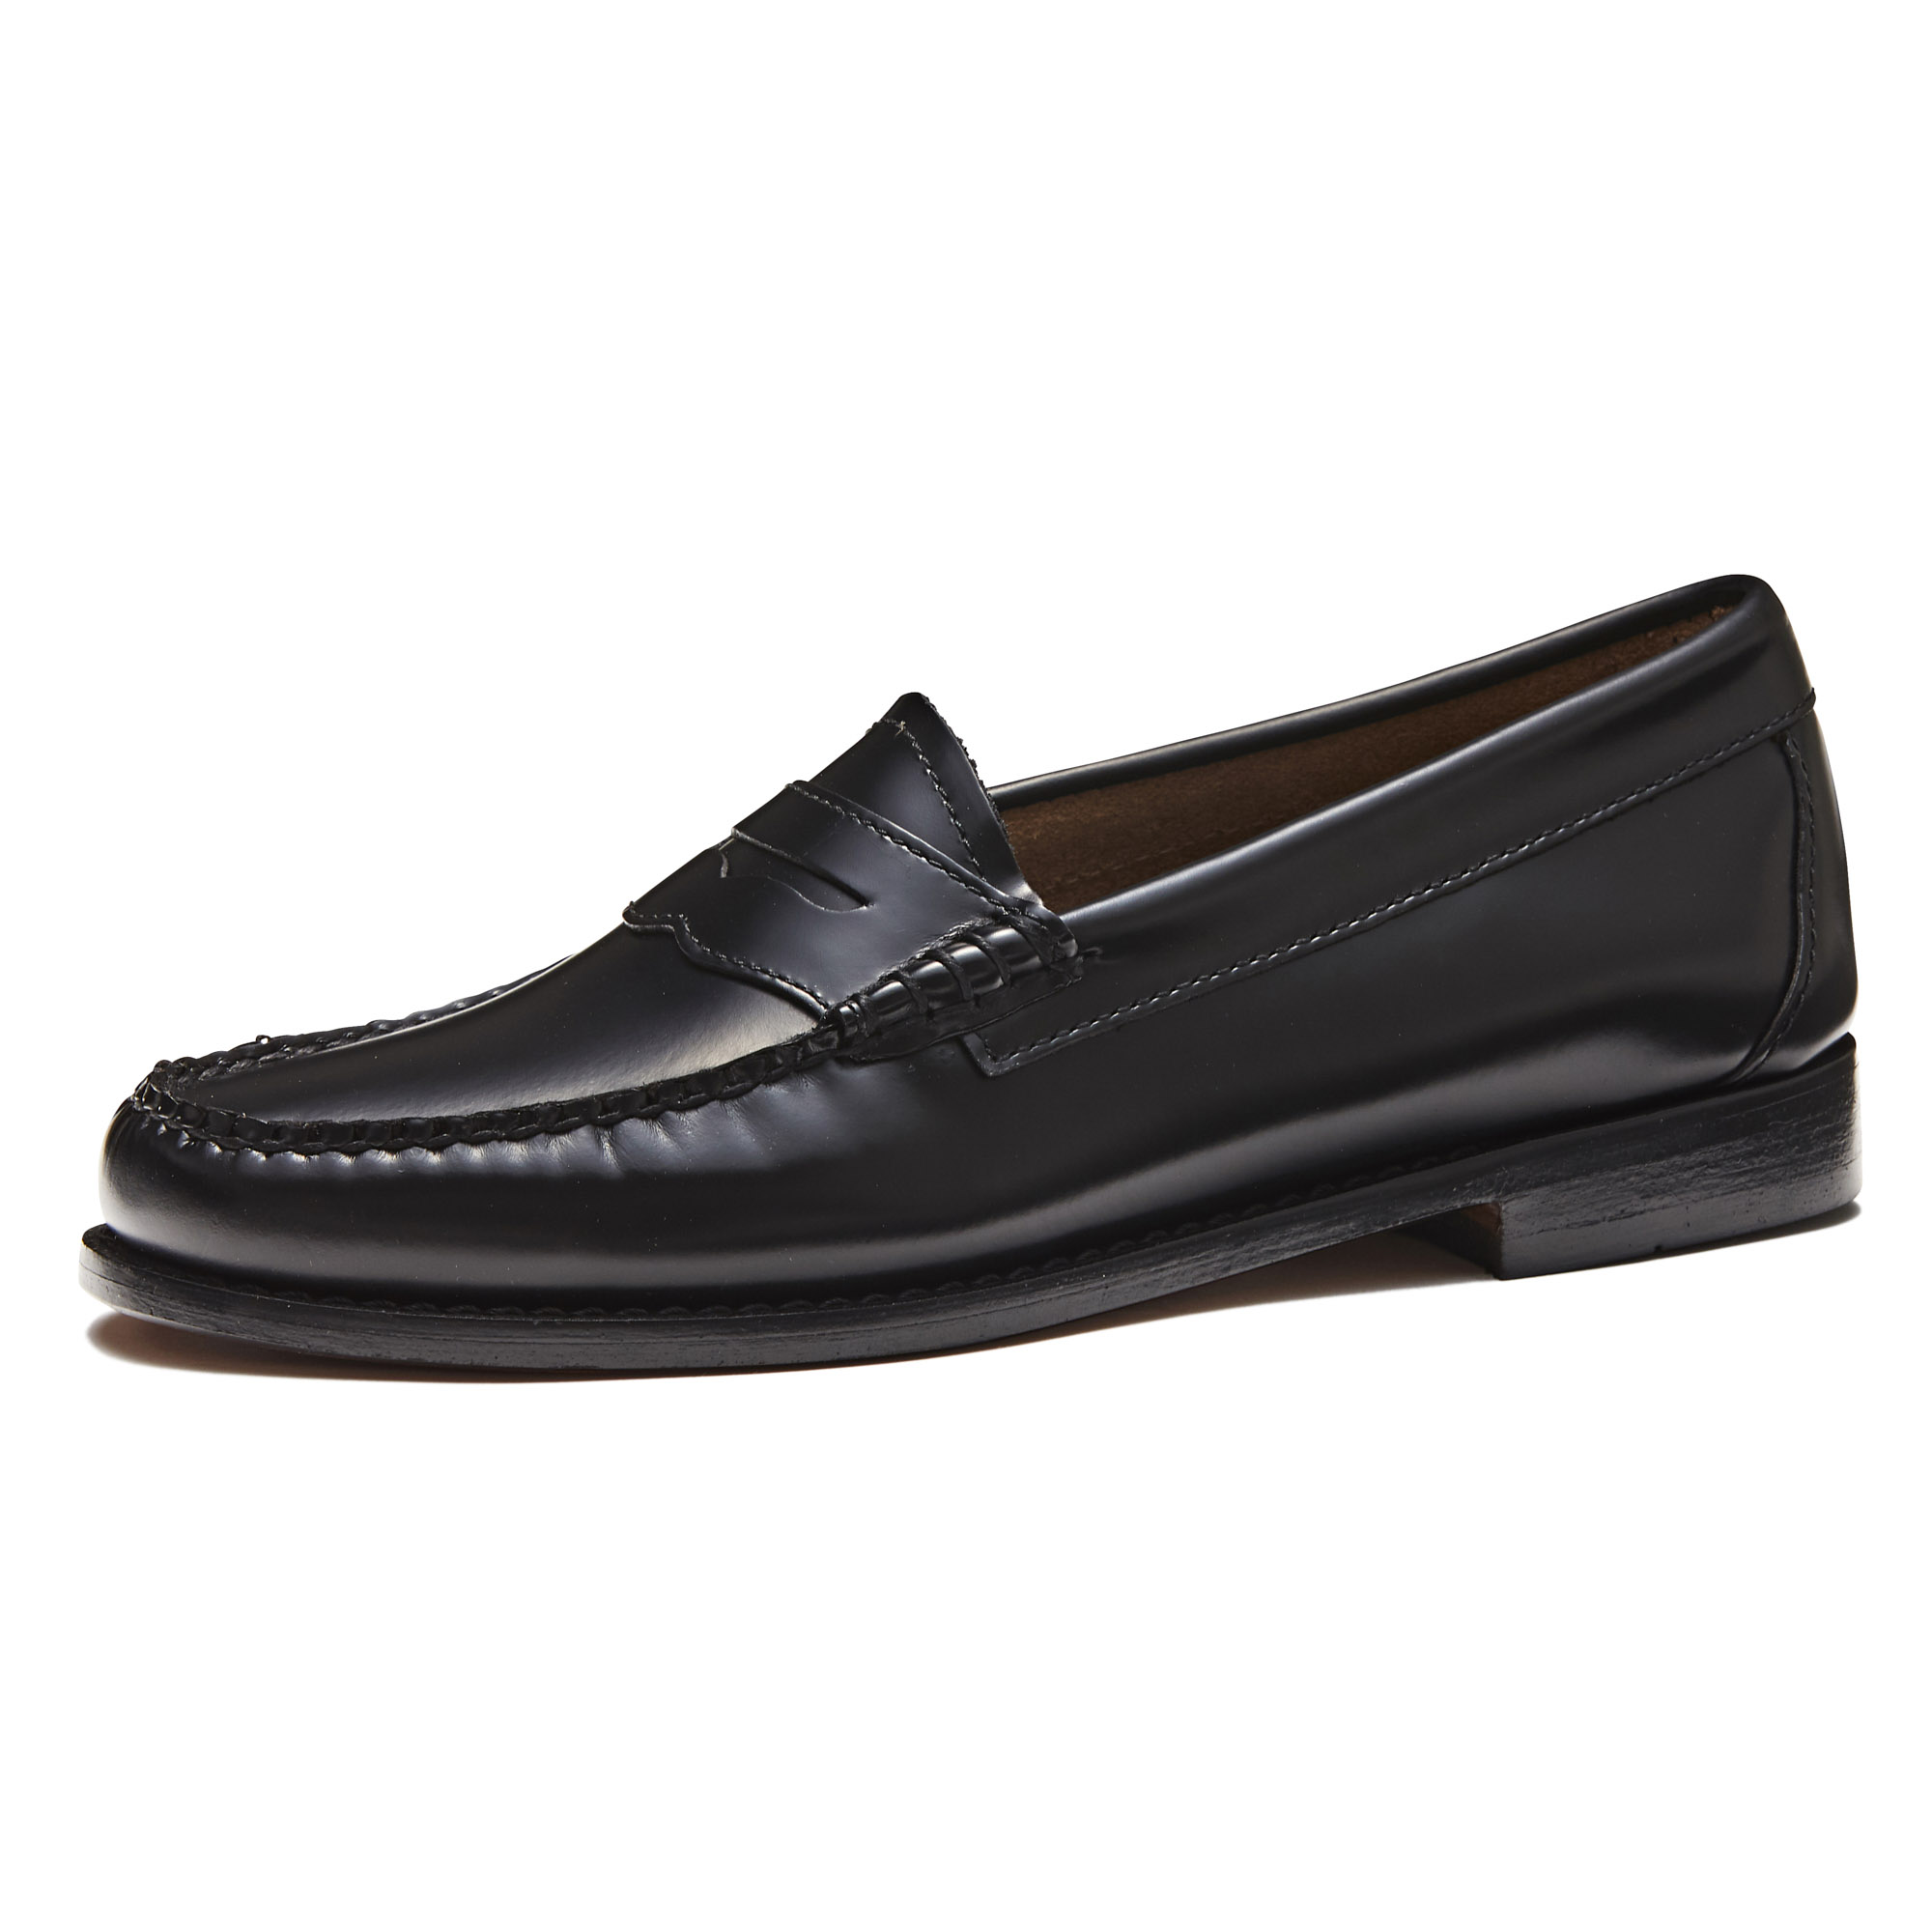 41010 / BLACK (LEATHER SOLE)